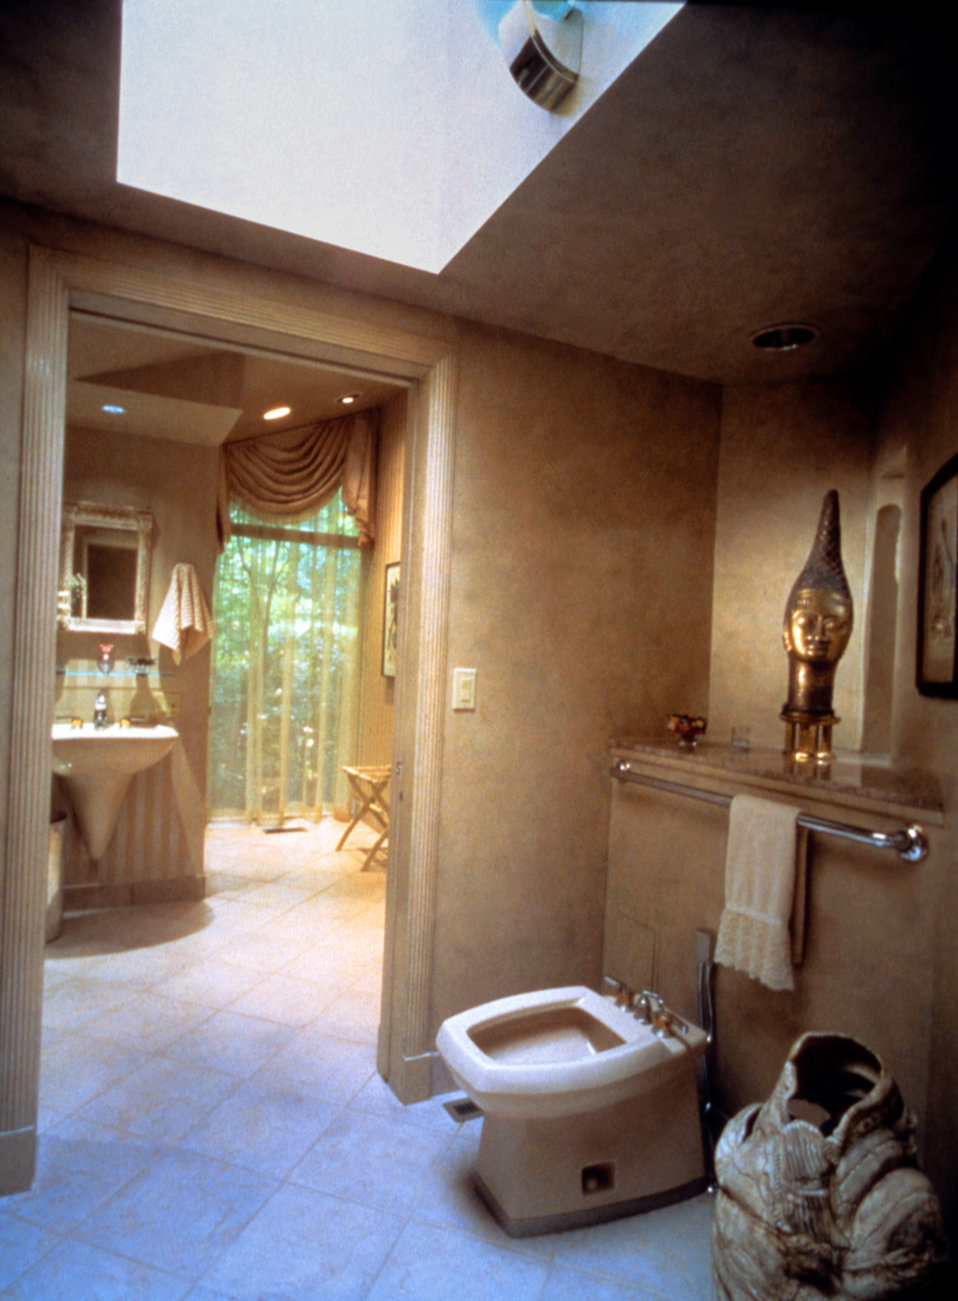 This was one of three images (PHIL# 9198 - 9200), depicting a modern high-end bathroom design, which took into account the needs of the mobi